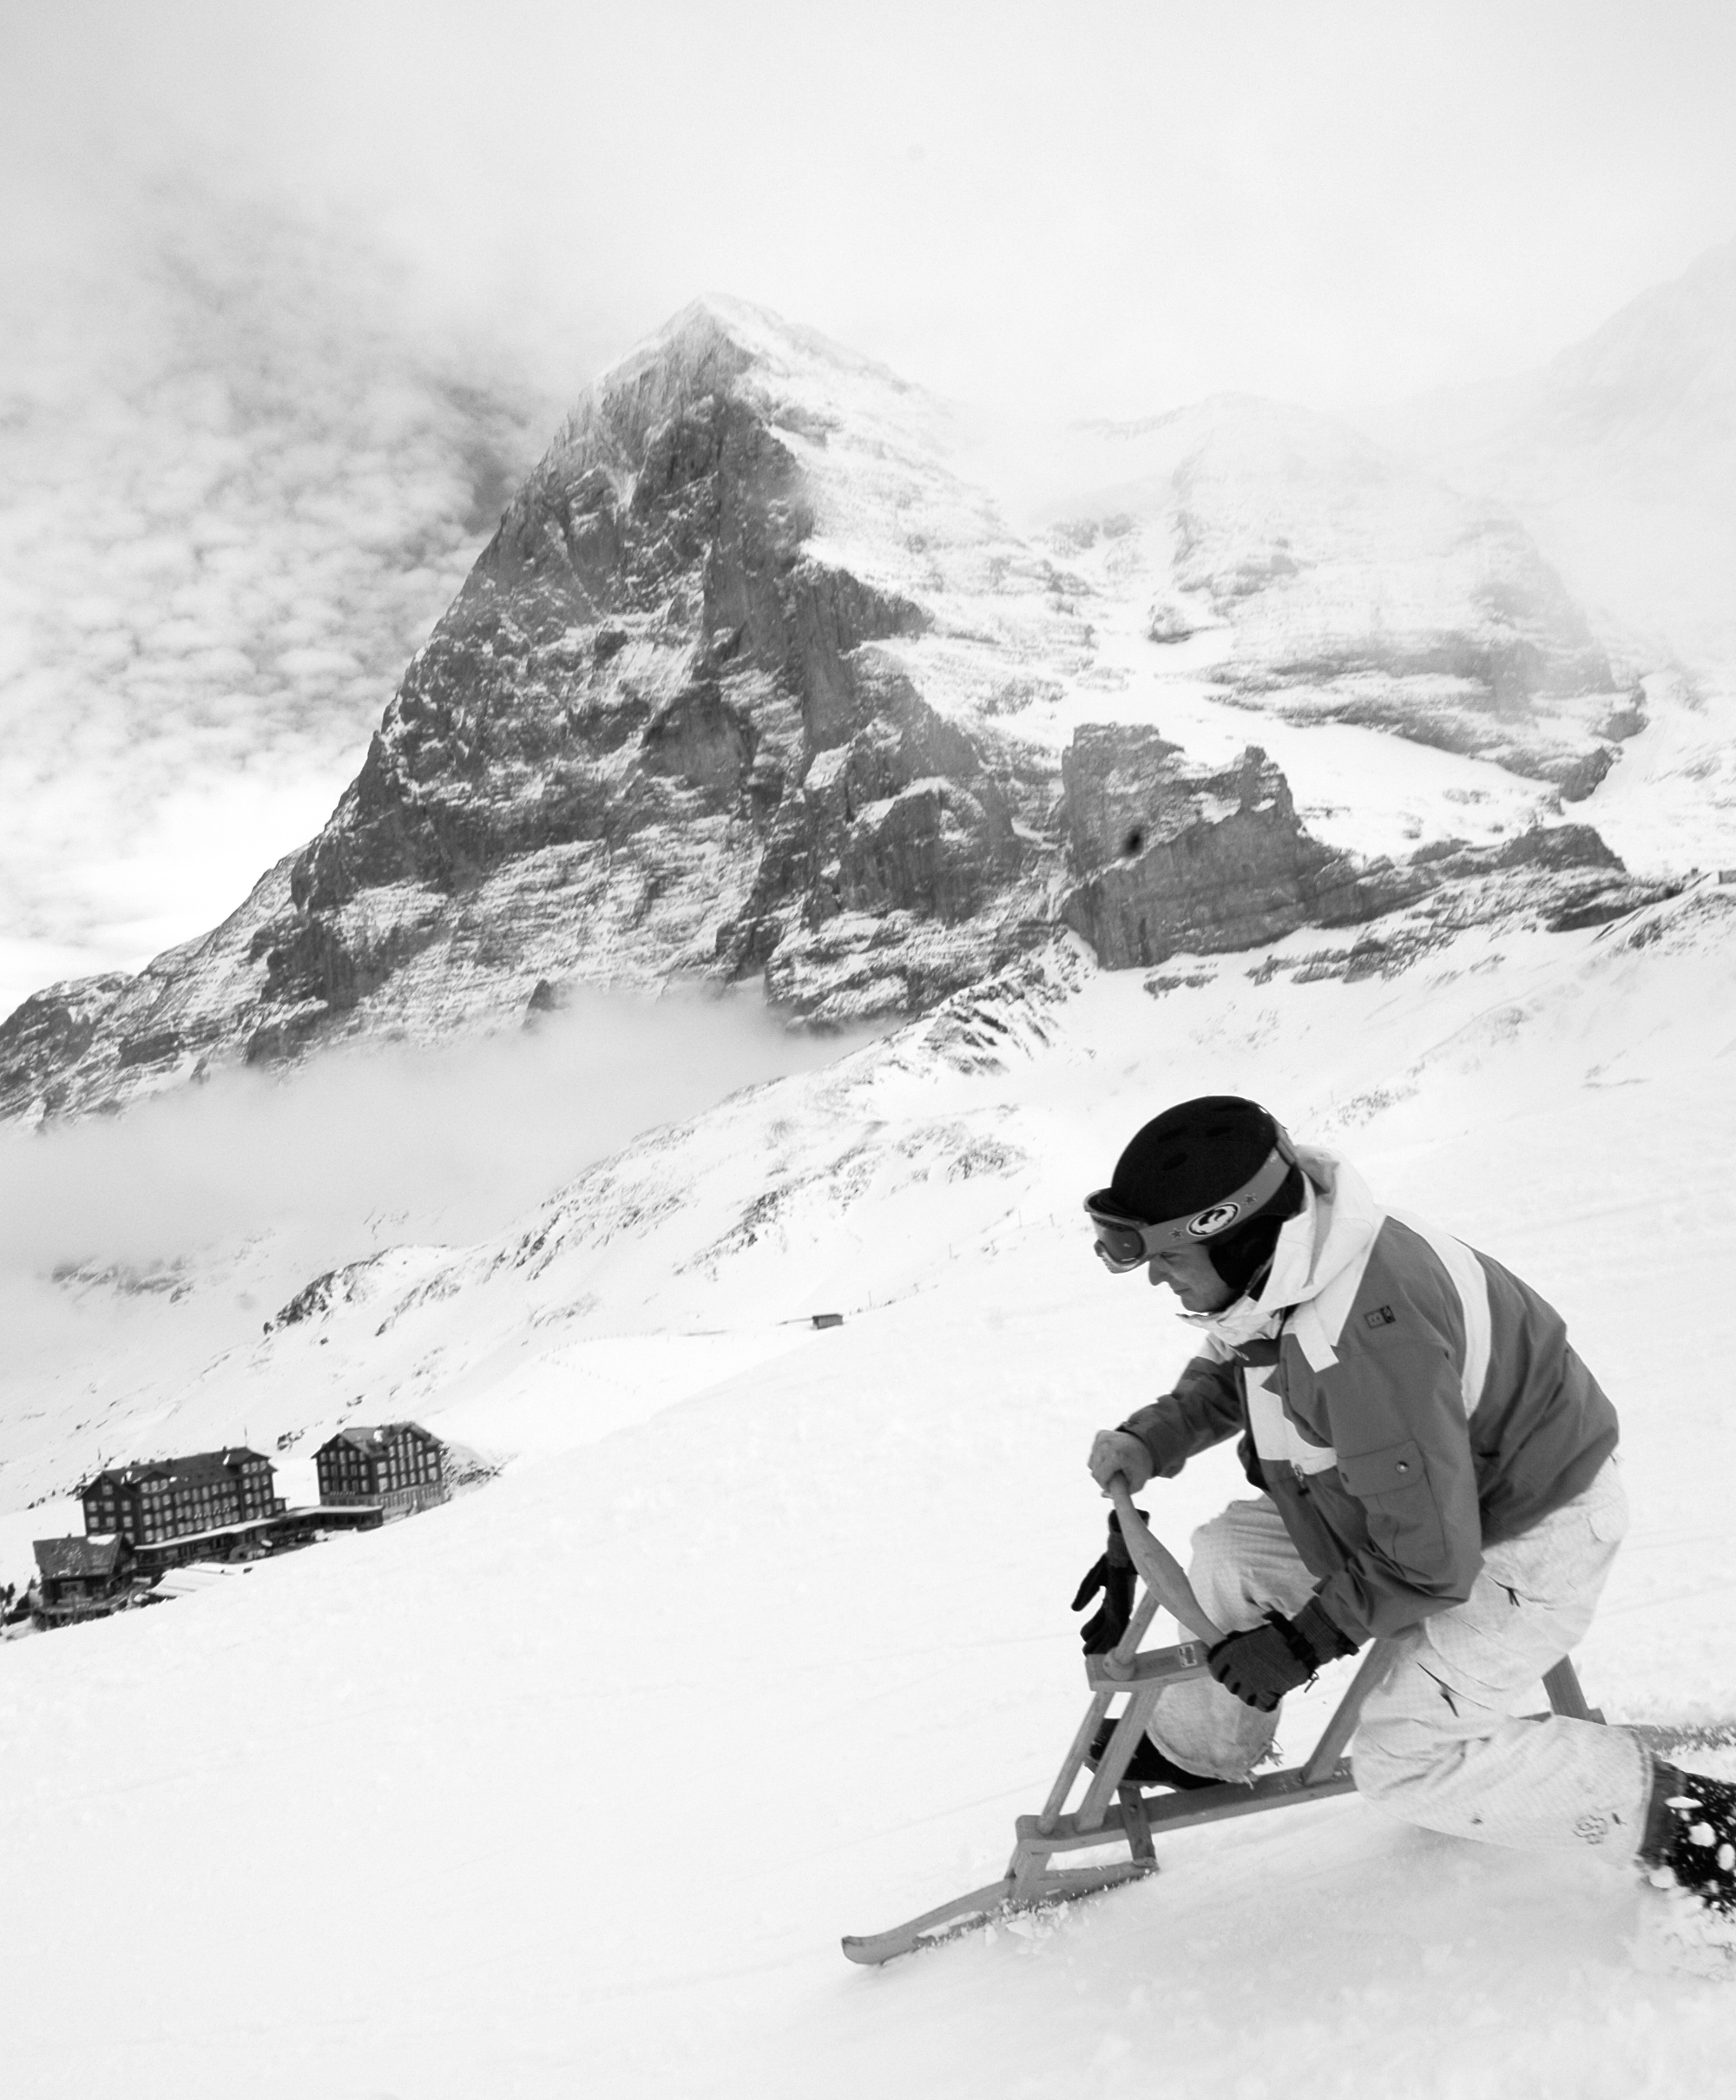 We arrange Snow olympics for your wedding in the Swiss Alps